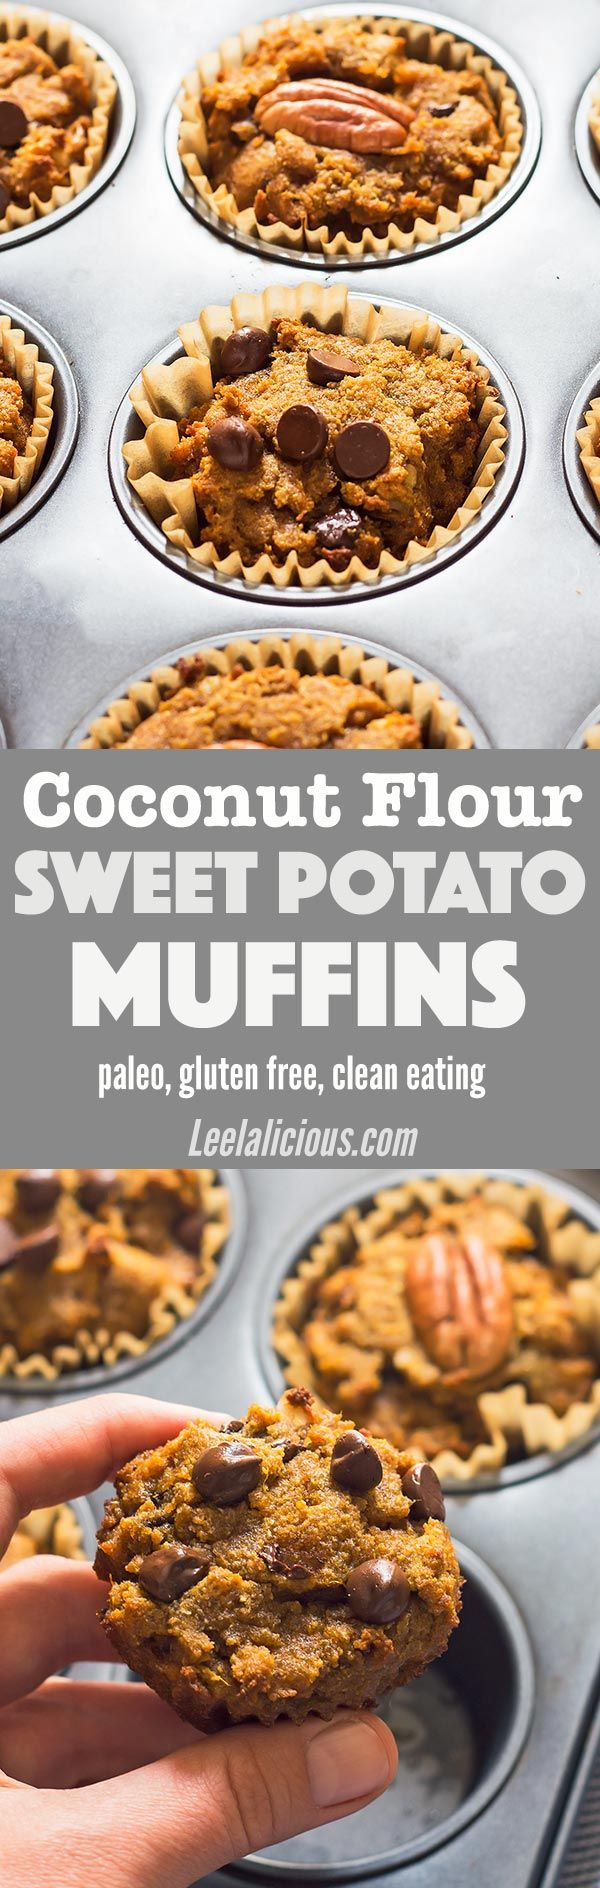 These delicious and moist Paleo Sweet Potato Muffins are a great make-ahead and take-along breakfast. They are made with coconut flour, therefore gluten free and grain free! Low carb and keto option.  Recipe   Coconut Oil   Maple Syrup   Chocolate Chips   Pecans   Simple   Clean Eating   Treats   Desserts